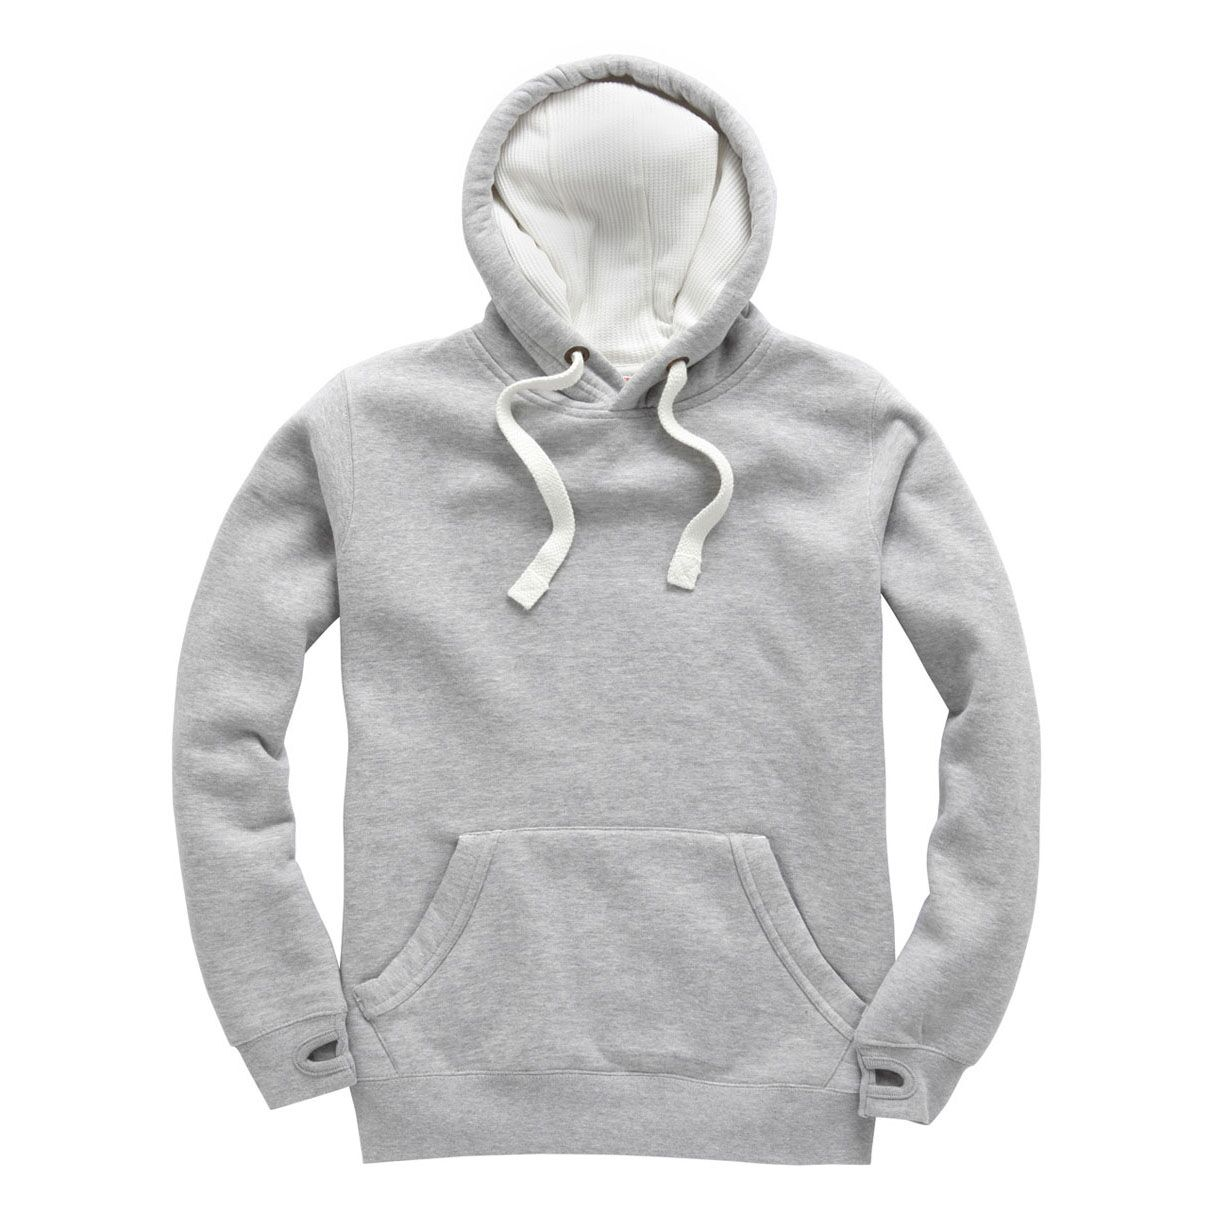 Hoodie Deluxe gris Gris Chiné